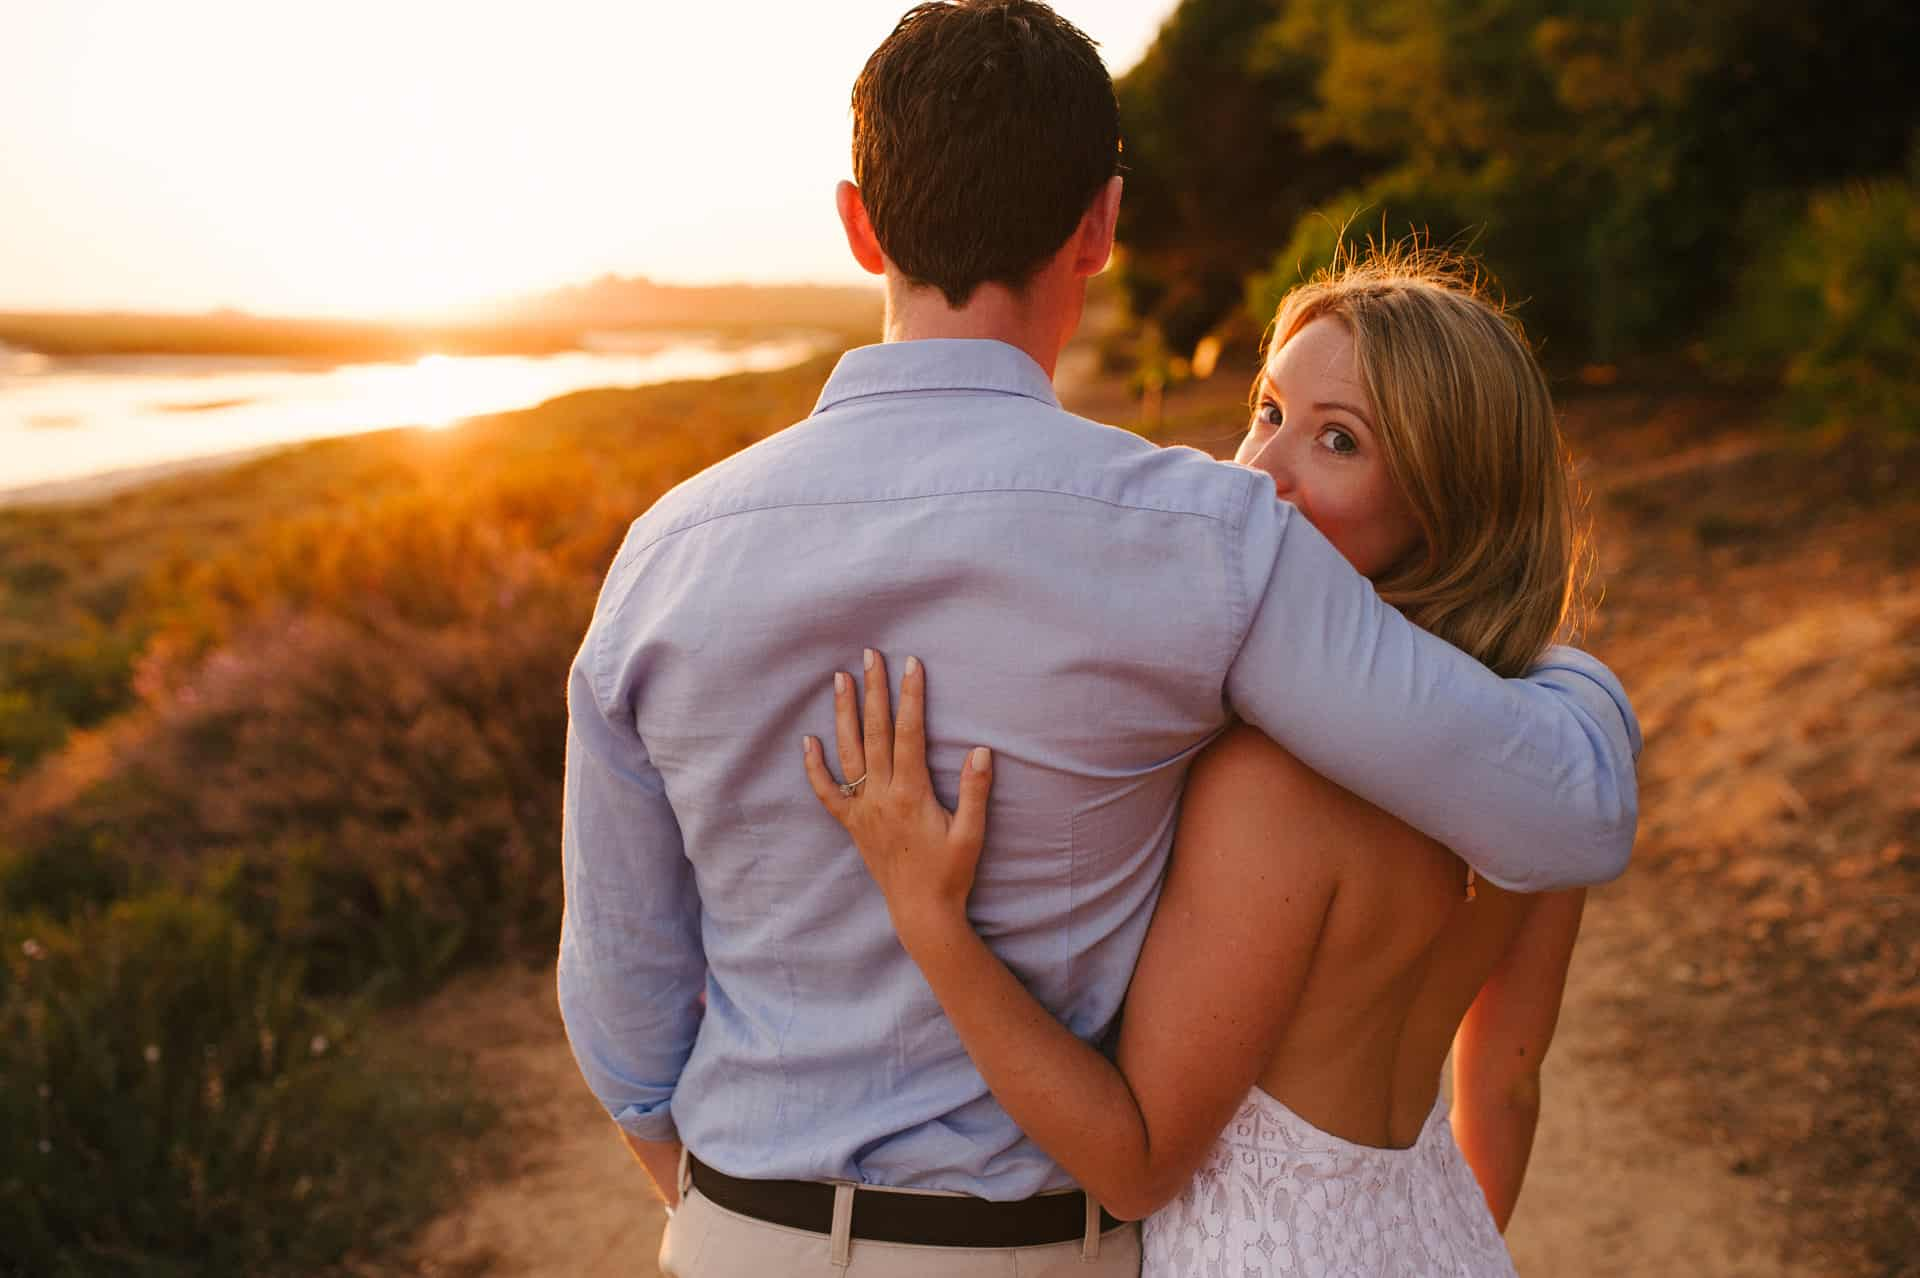 Best wedding images of the year (076 of 316)